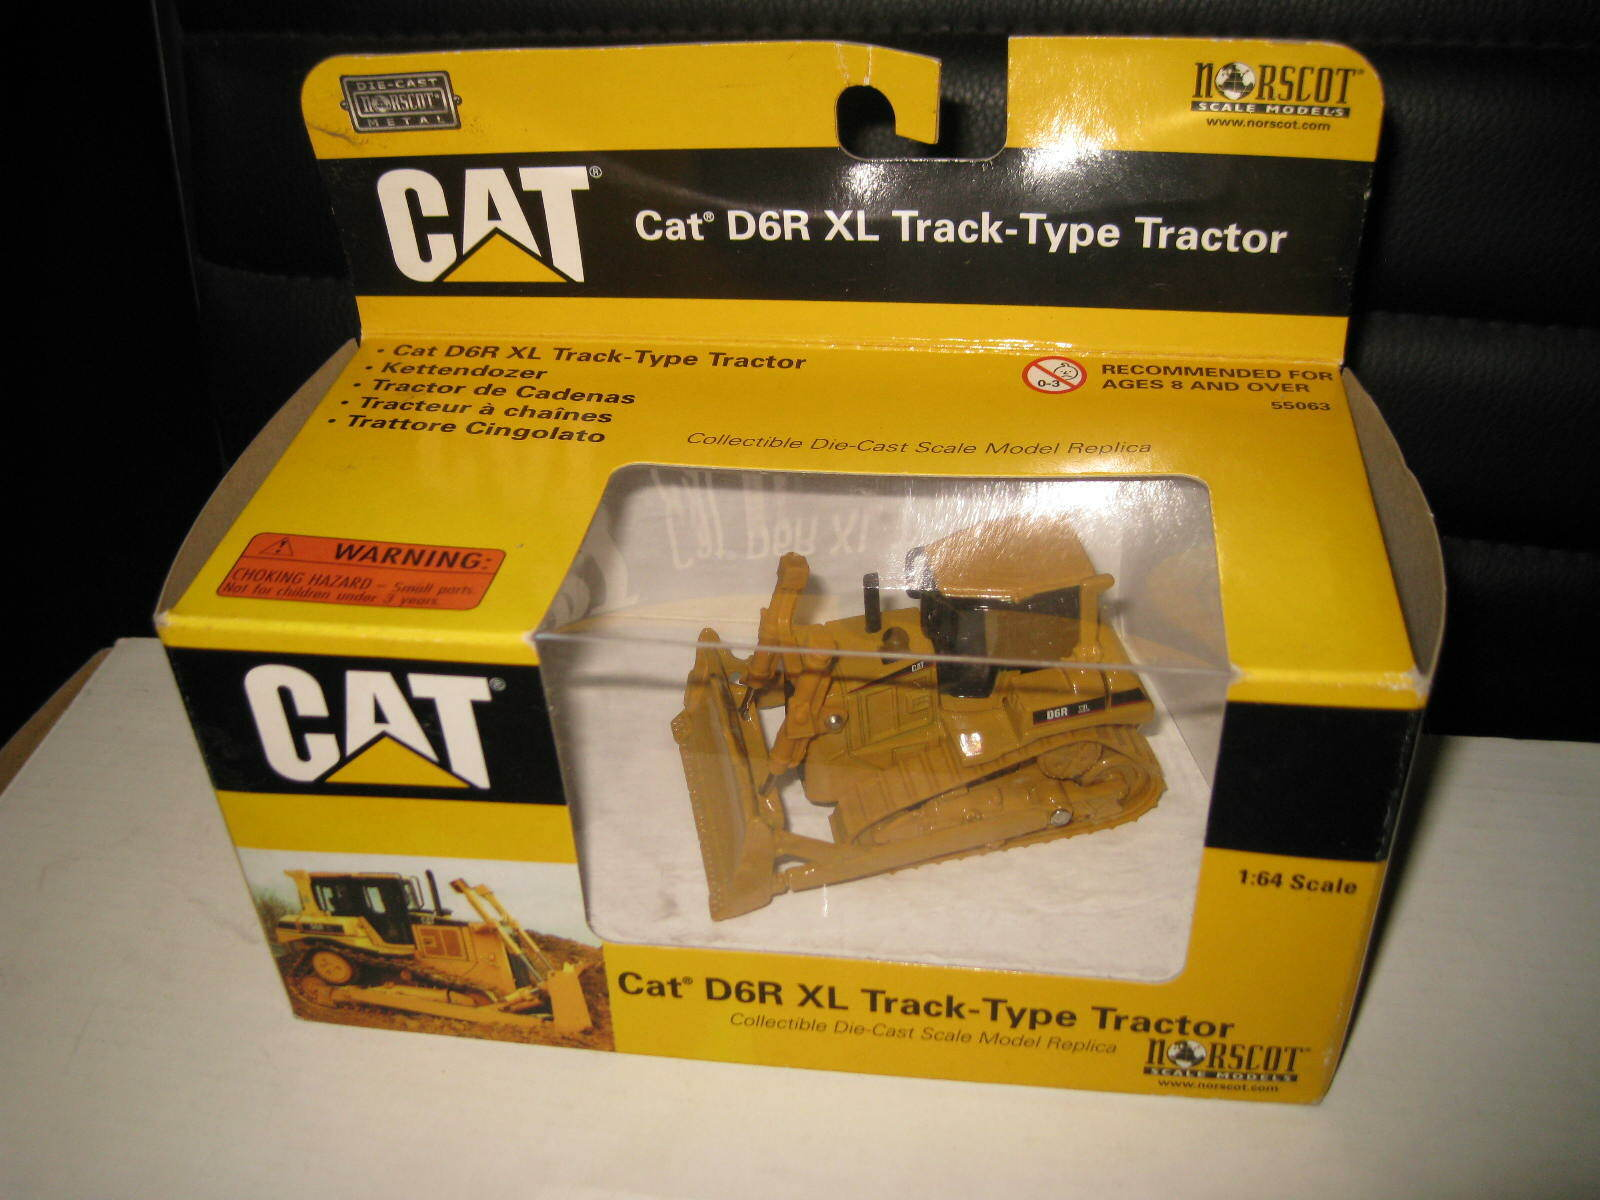 Caterpillar D6R Series II Crawler Dozer Dealer/'s Brochure DCPA4